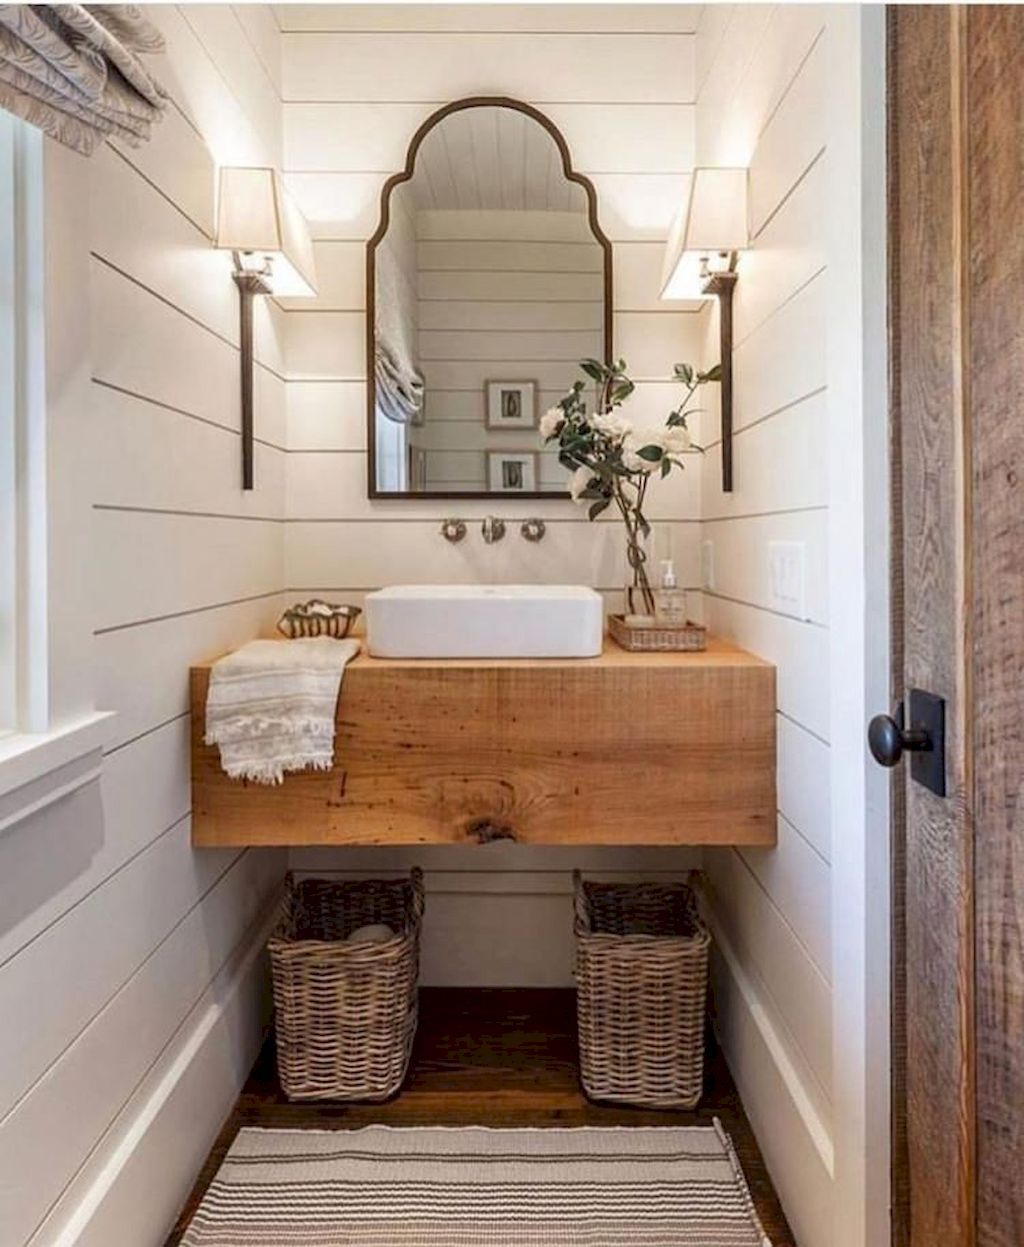 80 elegant small bathroom decorating ideas powder room pinterest rh pinterest com